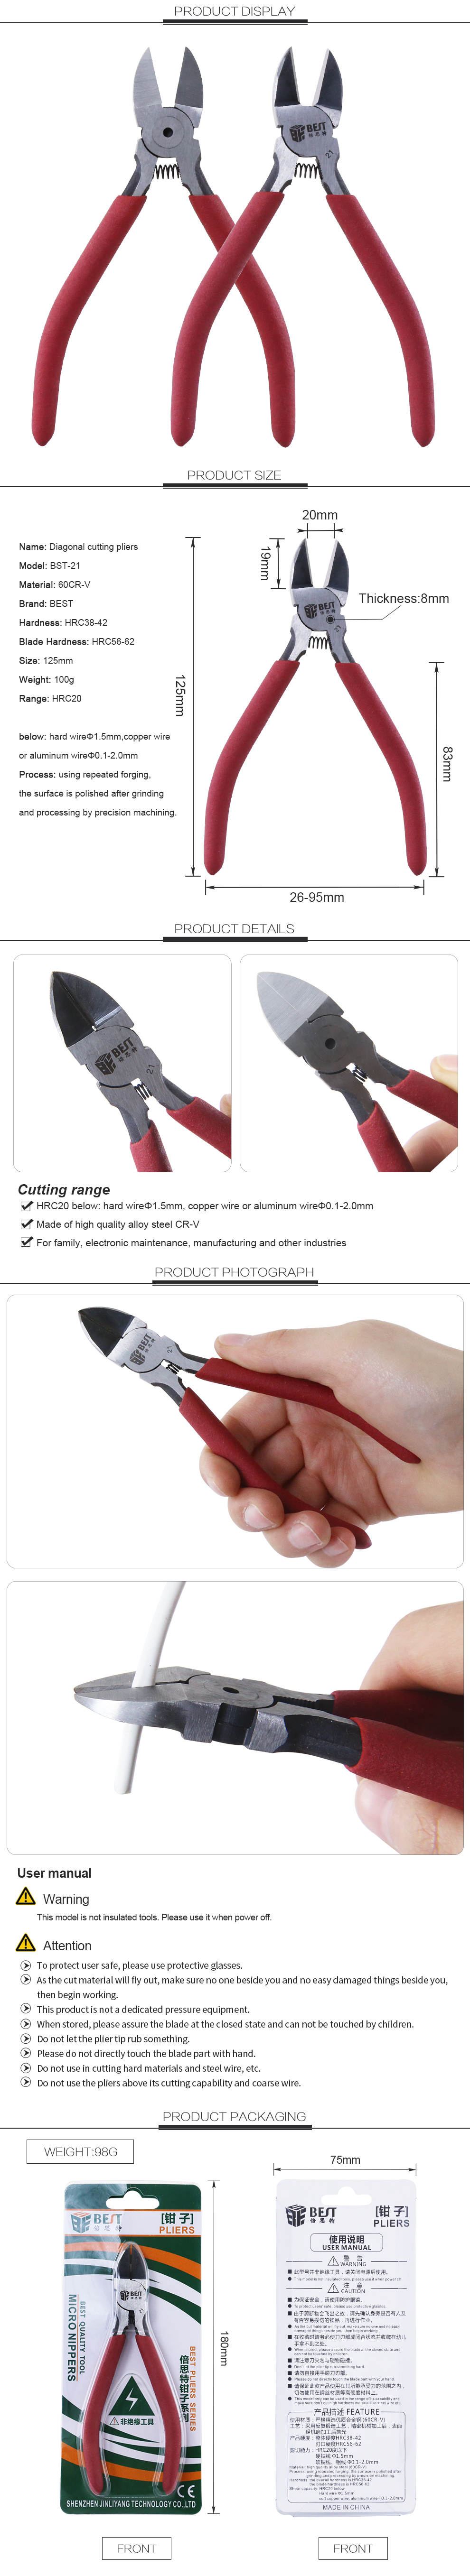 BEST-21 Manufacturer Factory Direct Sales Professional Chrome Vanadium PVC Diagonal Cutting Pliers Types of Holding Tools Pliers